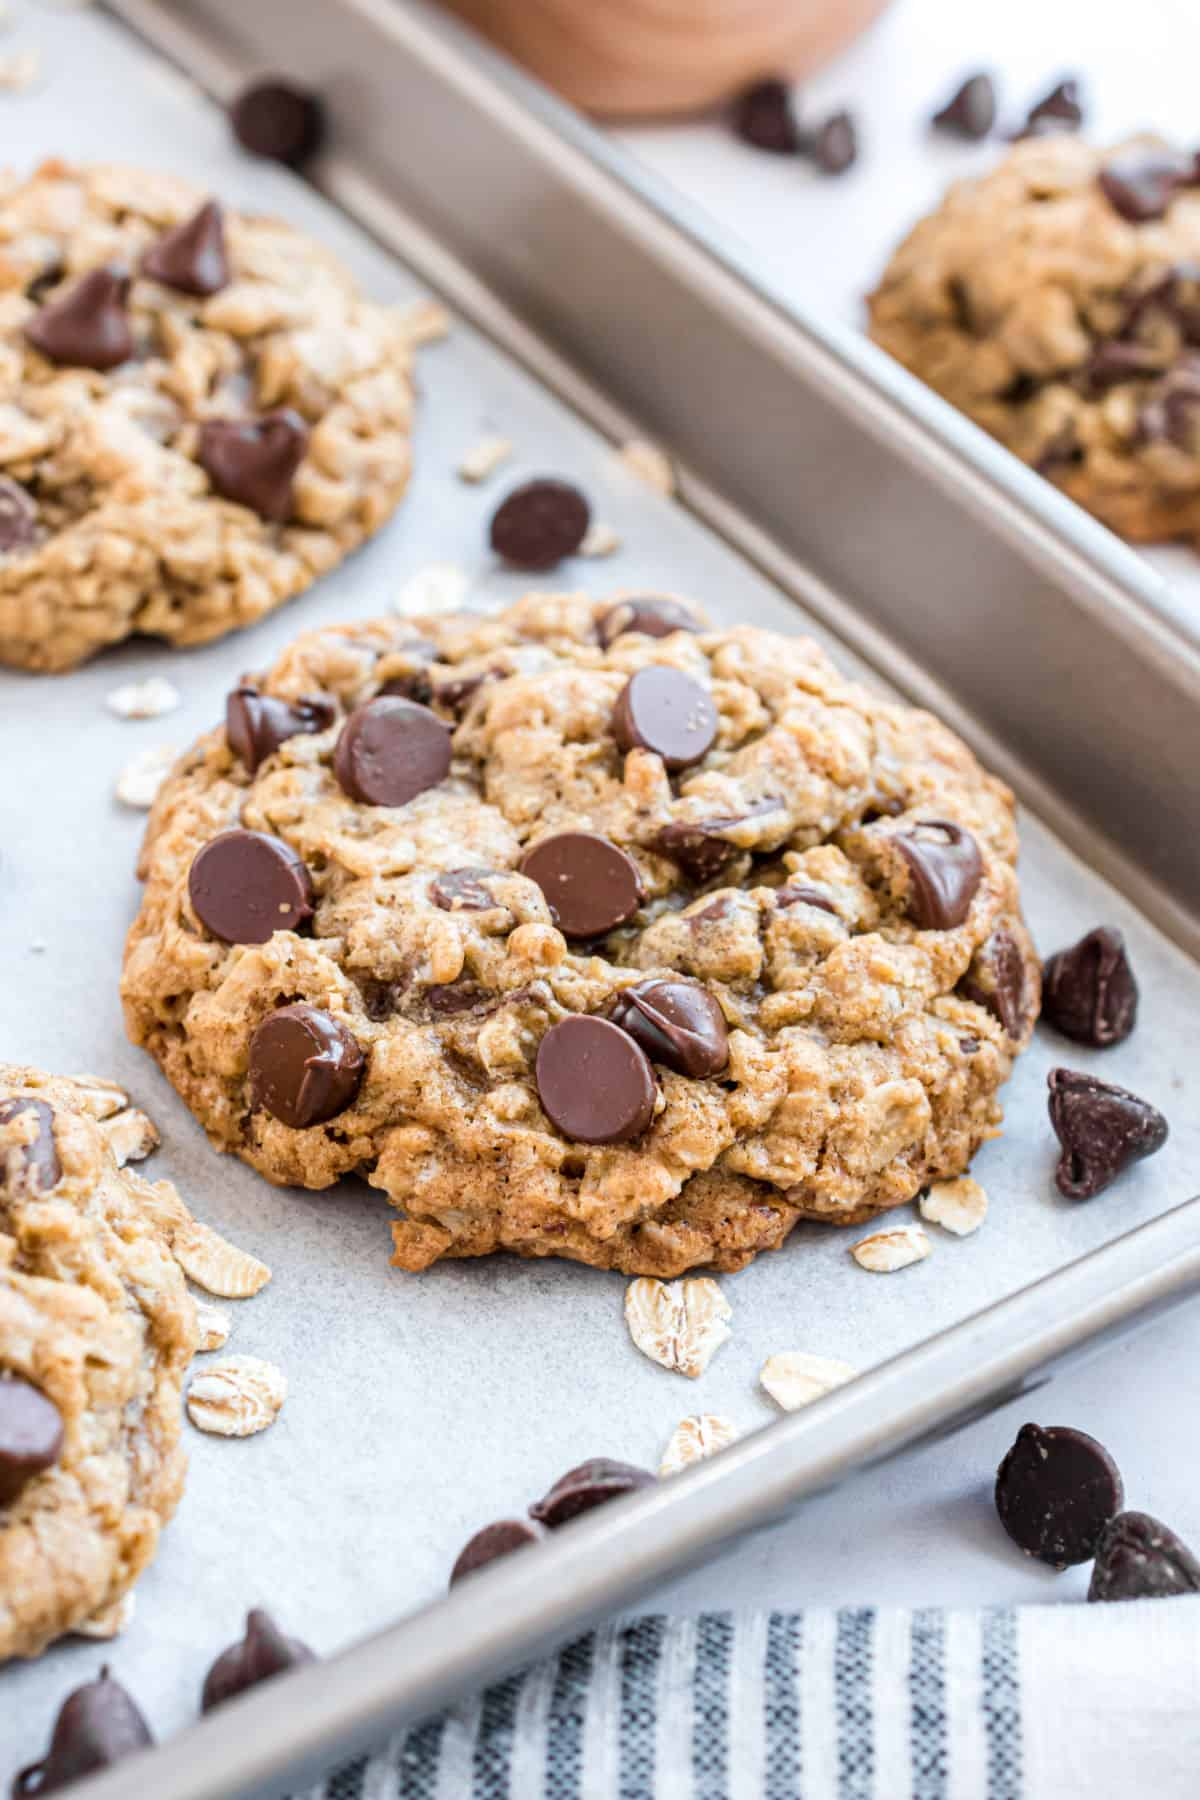 Oatmeal chocolate chip cookie baked on a parchment paper lined cookie sheet.